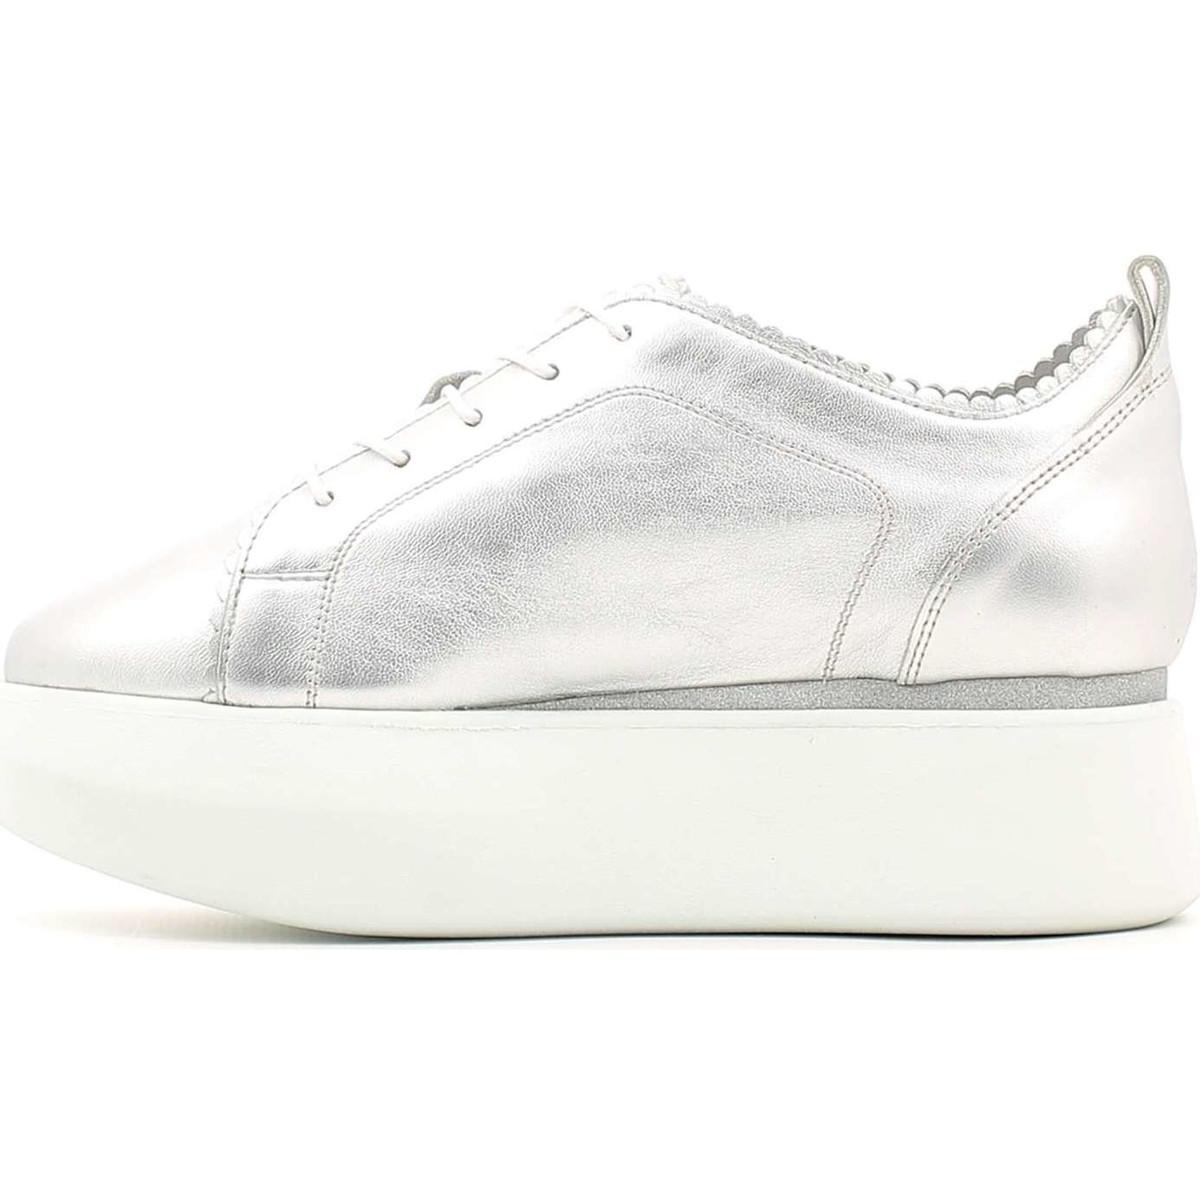 Alberto Guardiani Sd56451a Shoes With Laces Women Silver Women's Shoes (trainers) In Silver in Metallic